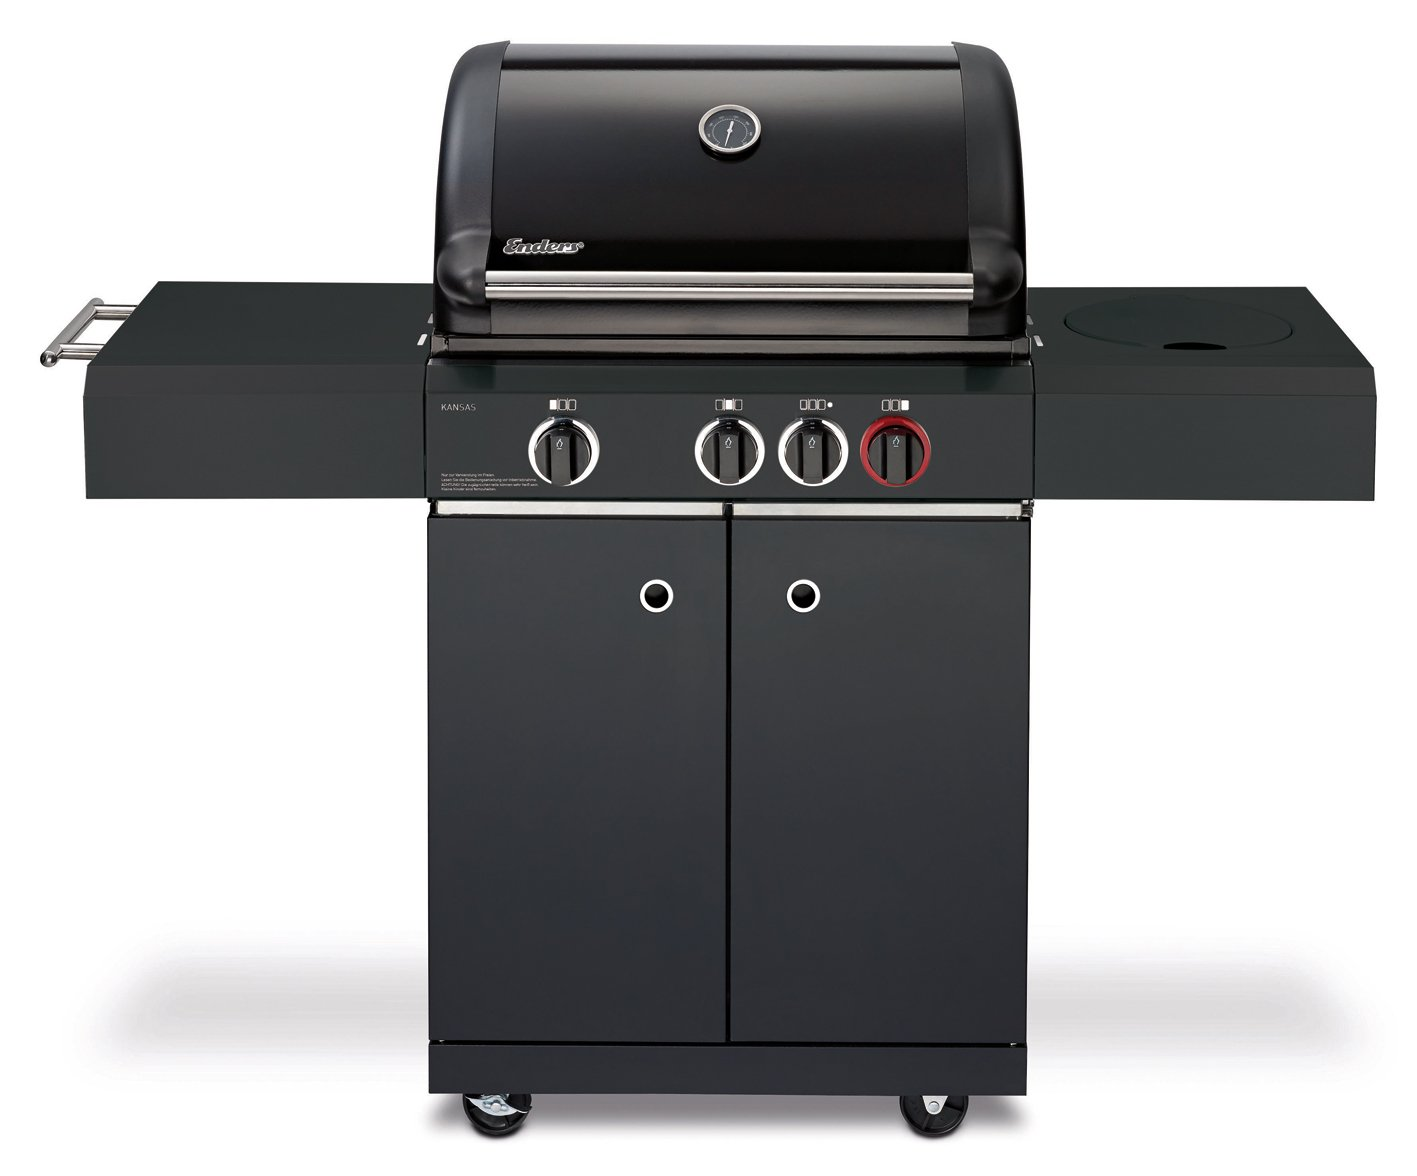 Enders Gasgrill Reinigen : Enders gasgrill kansas black k turbo amazon garten